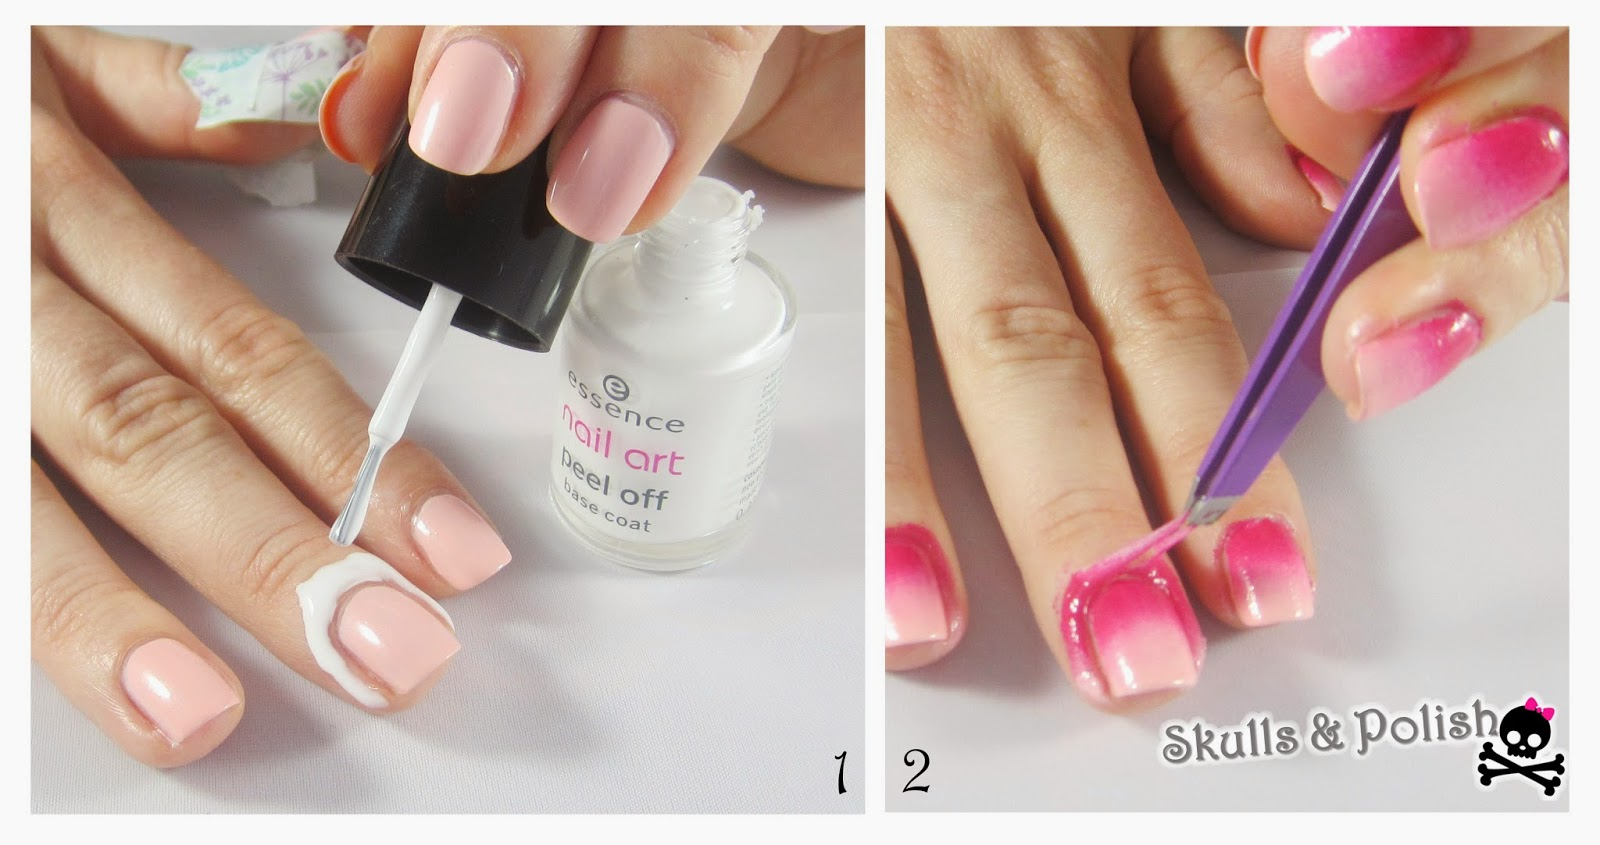 Comment poser nail art